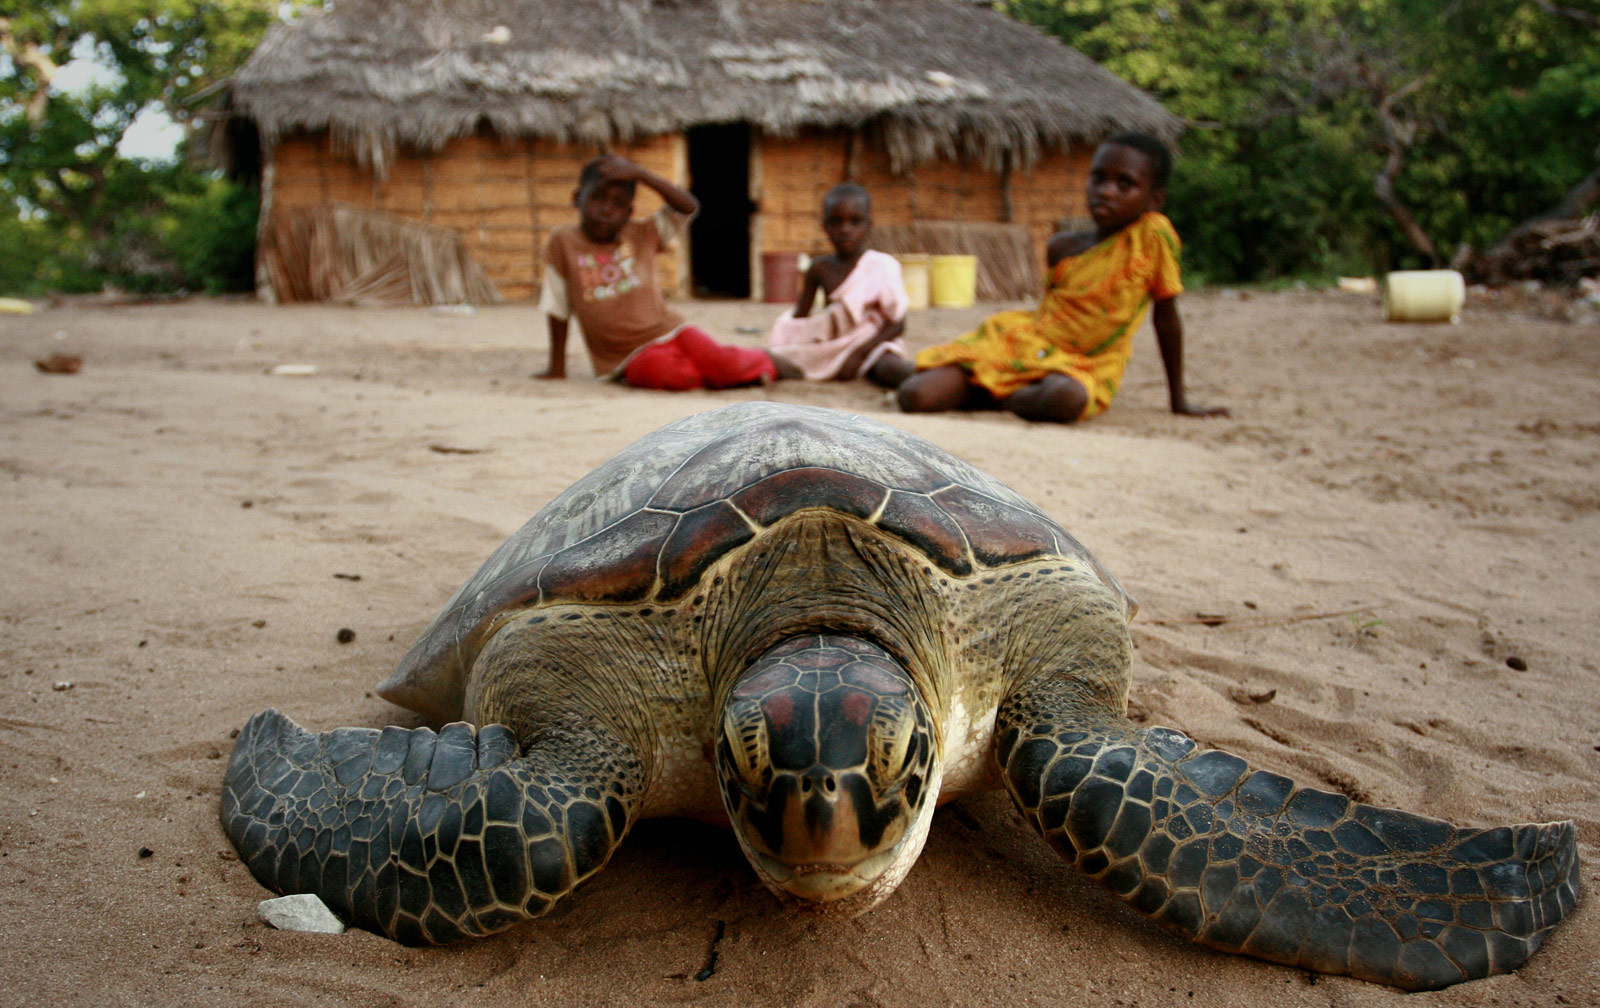 turtle-east-african-coral-reefs-diving